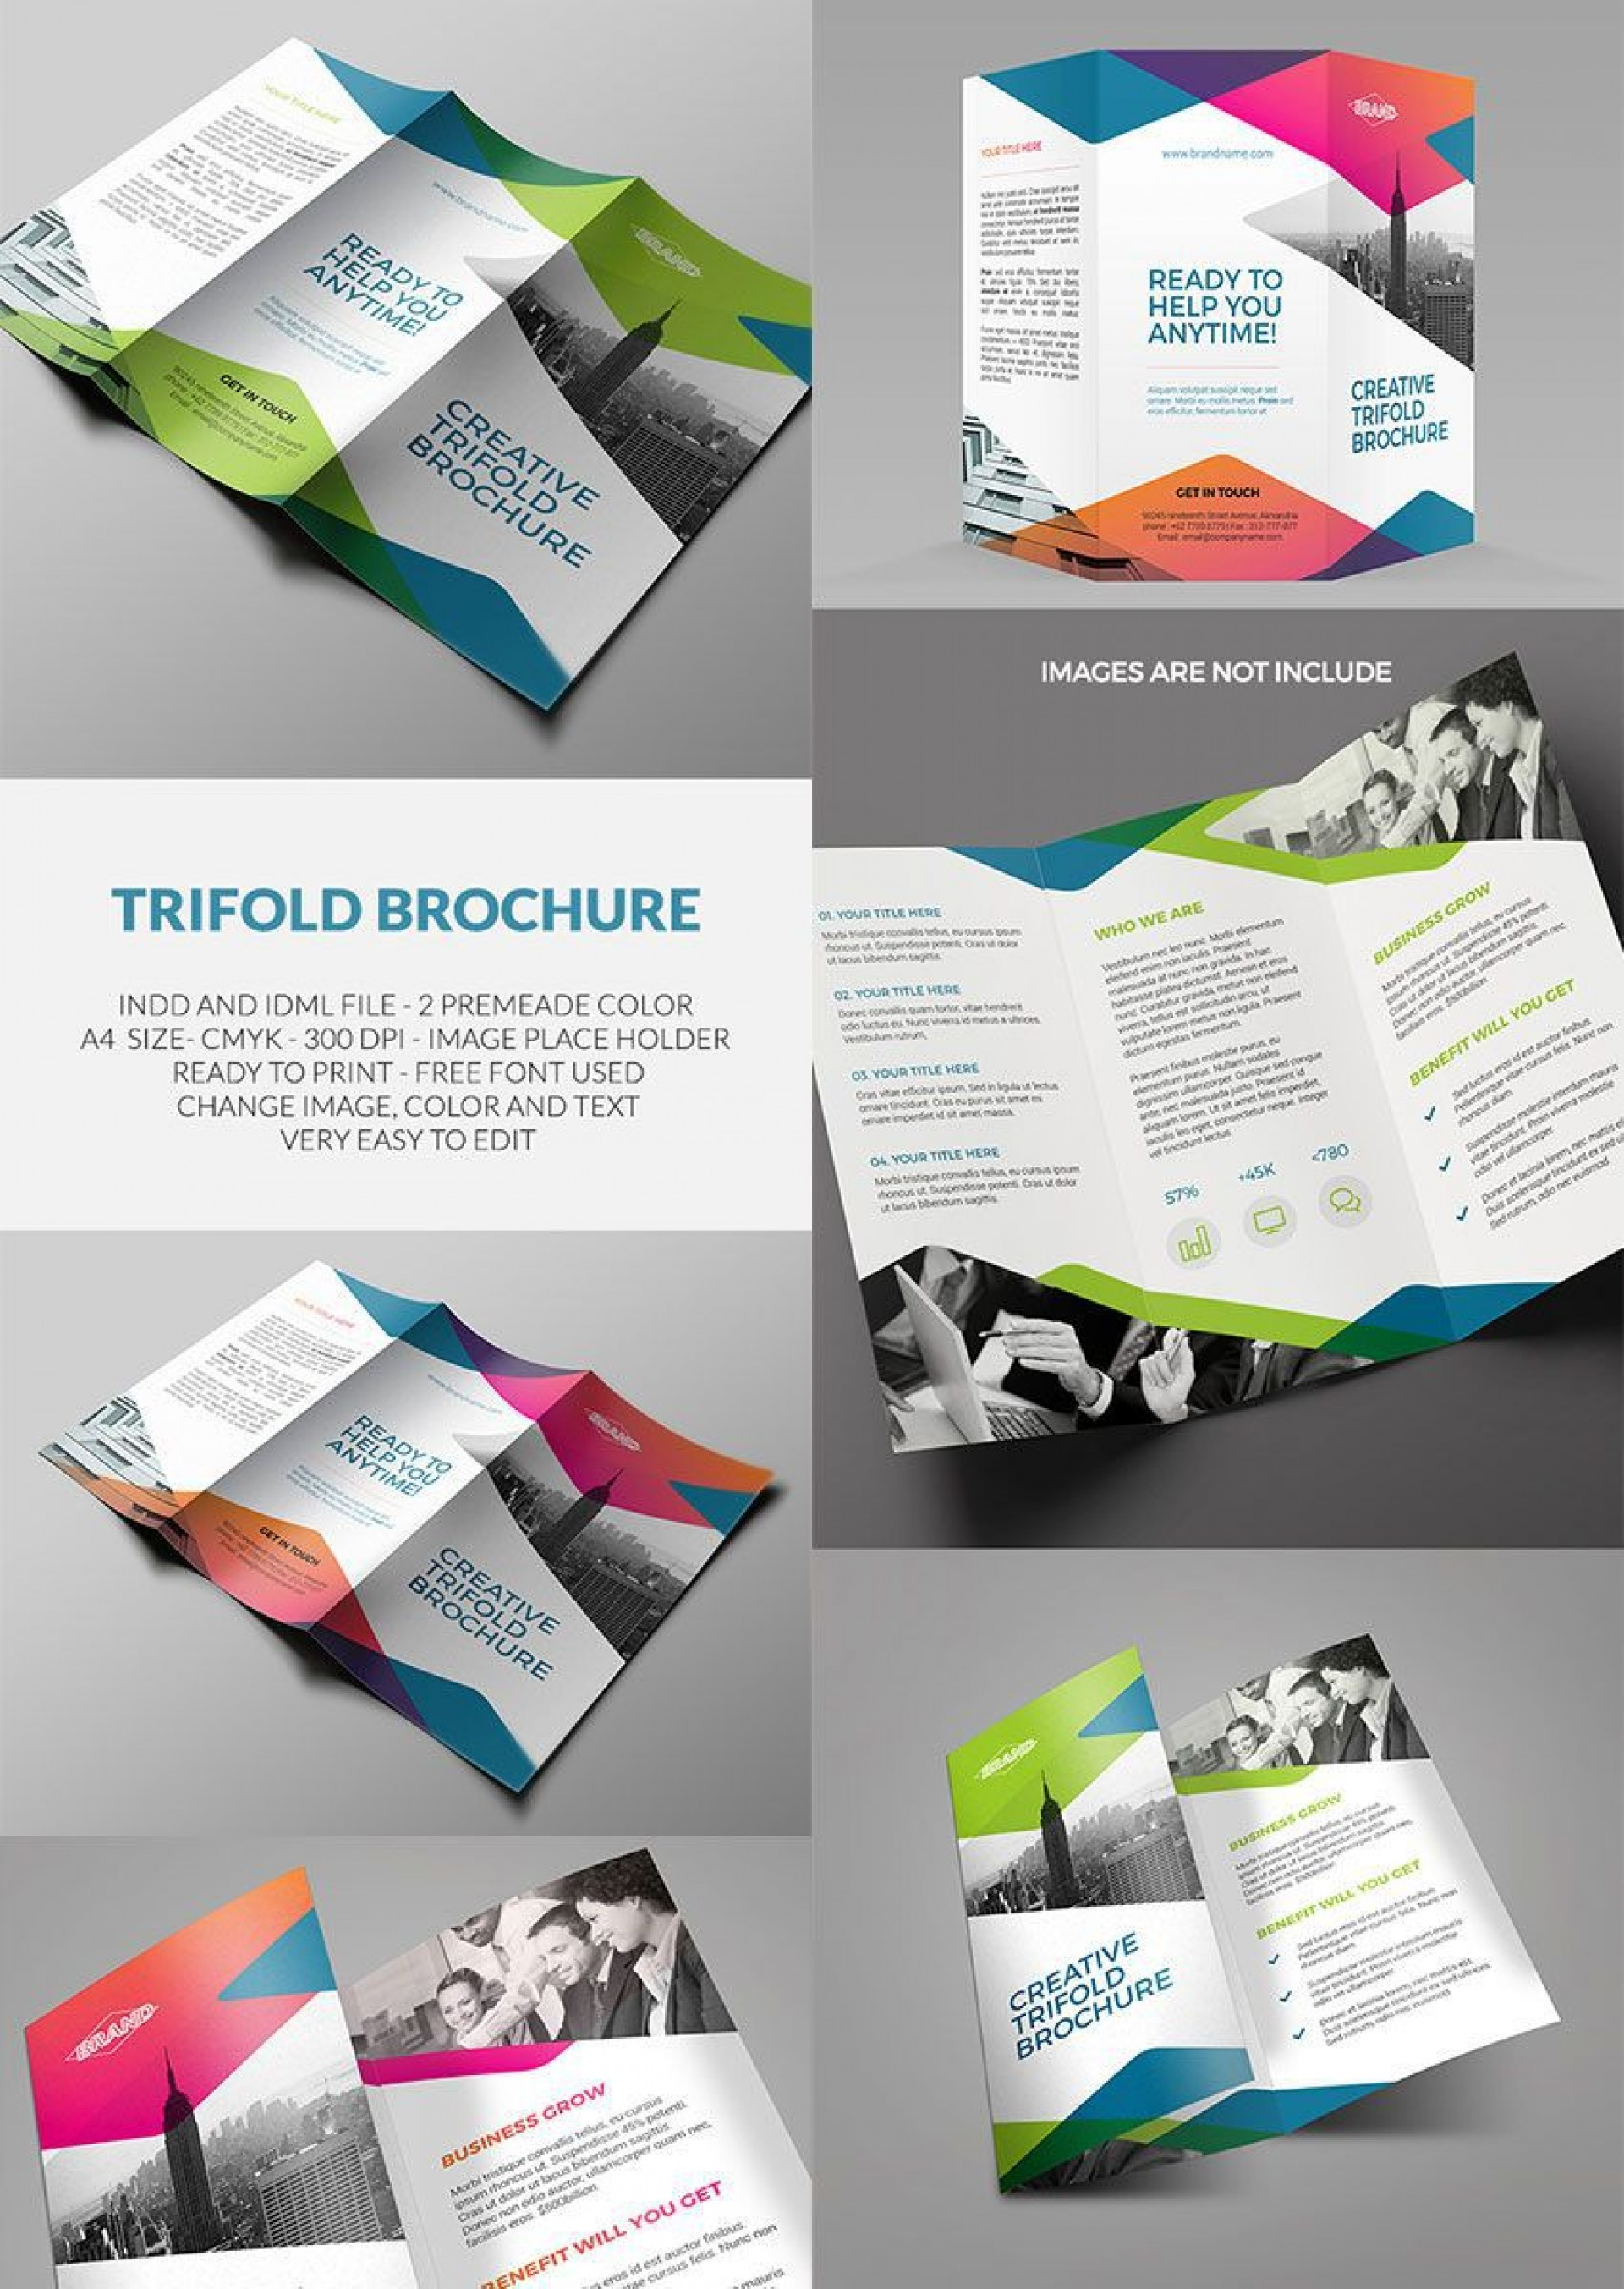 002 Outstanding Tri Fold Brochure Indesign Template Picture  Free Adobe1920